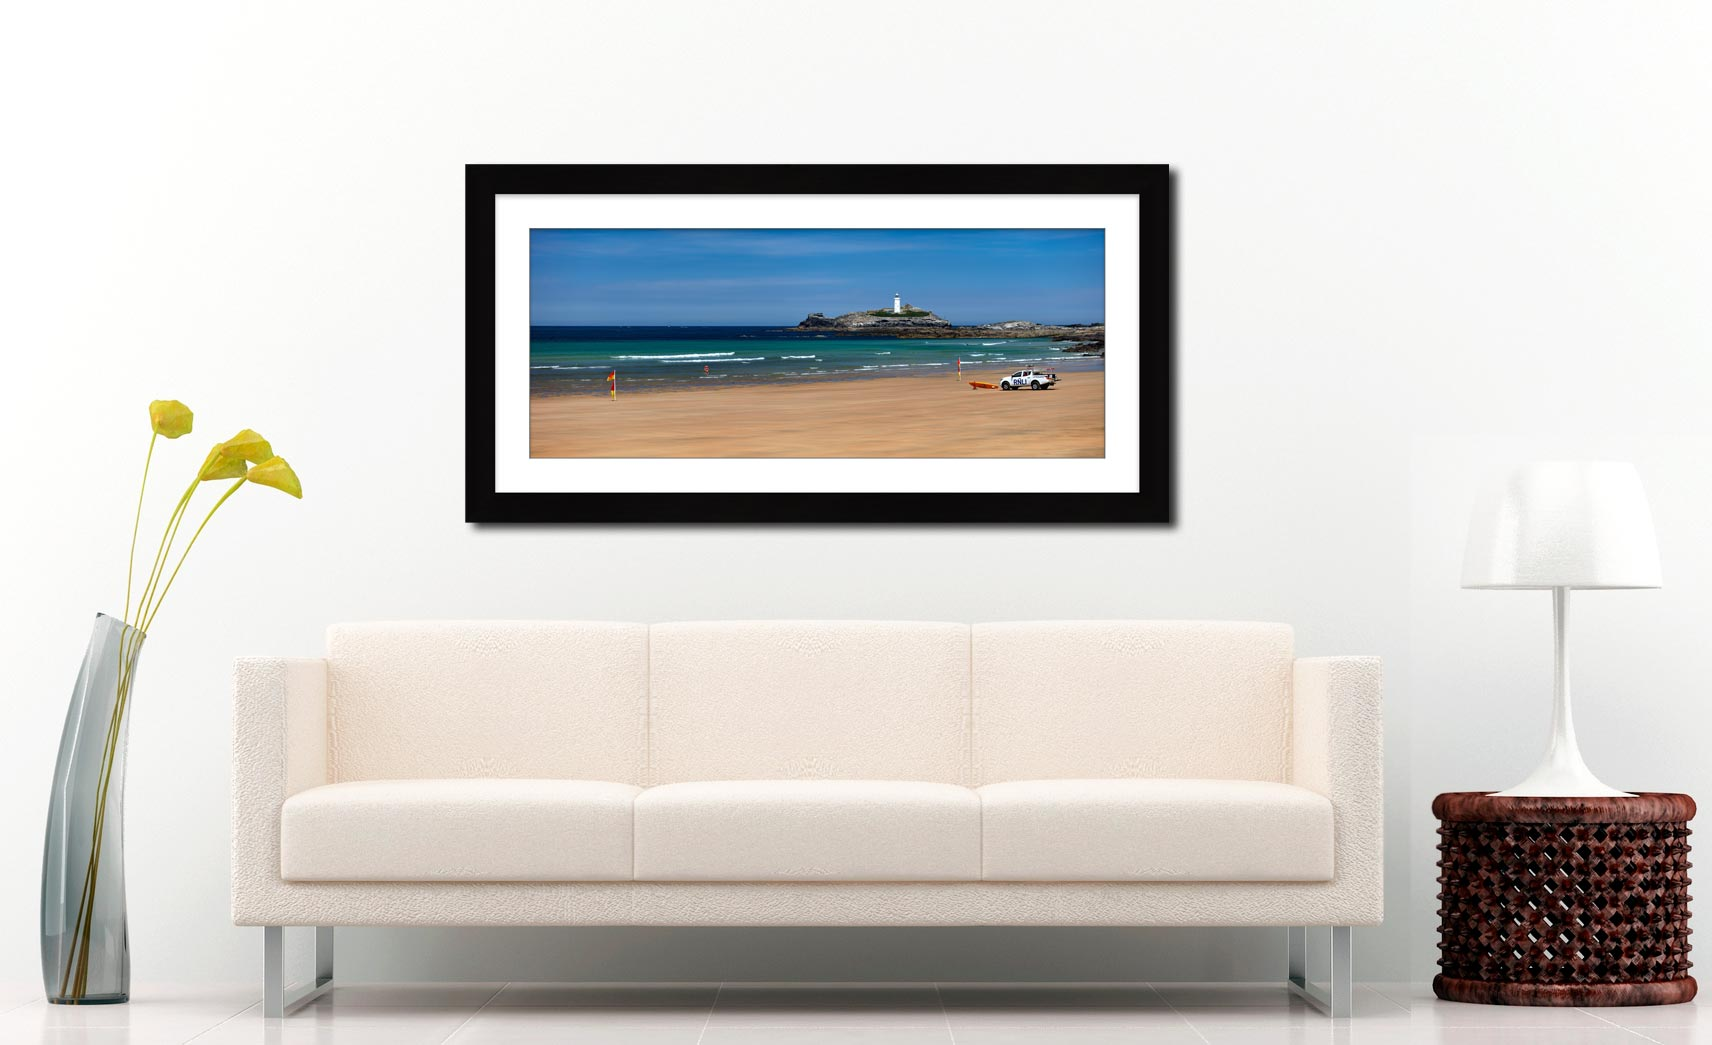 Godrevy Beach and Lighthouse - Framed Print with Mount on Wall